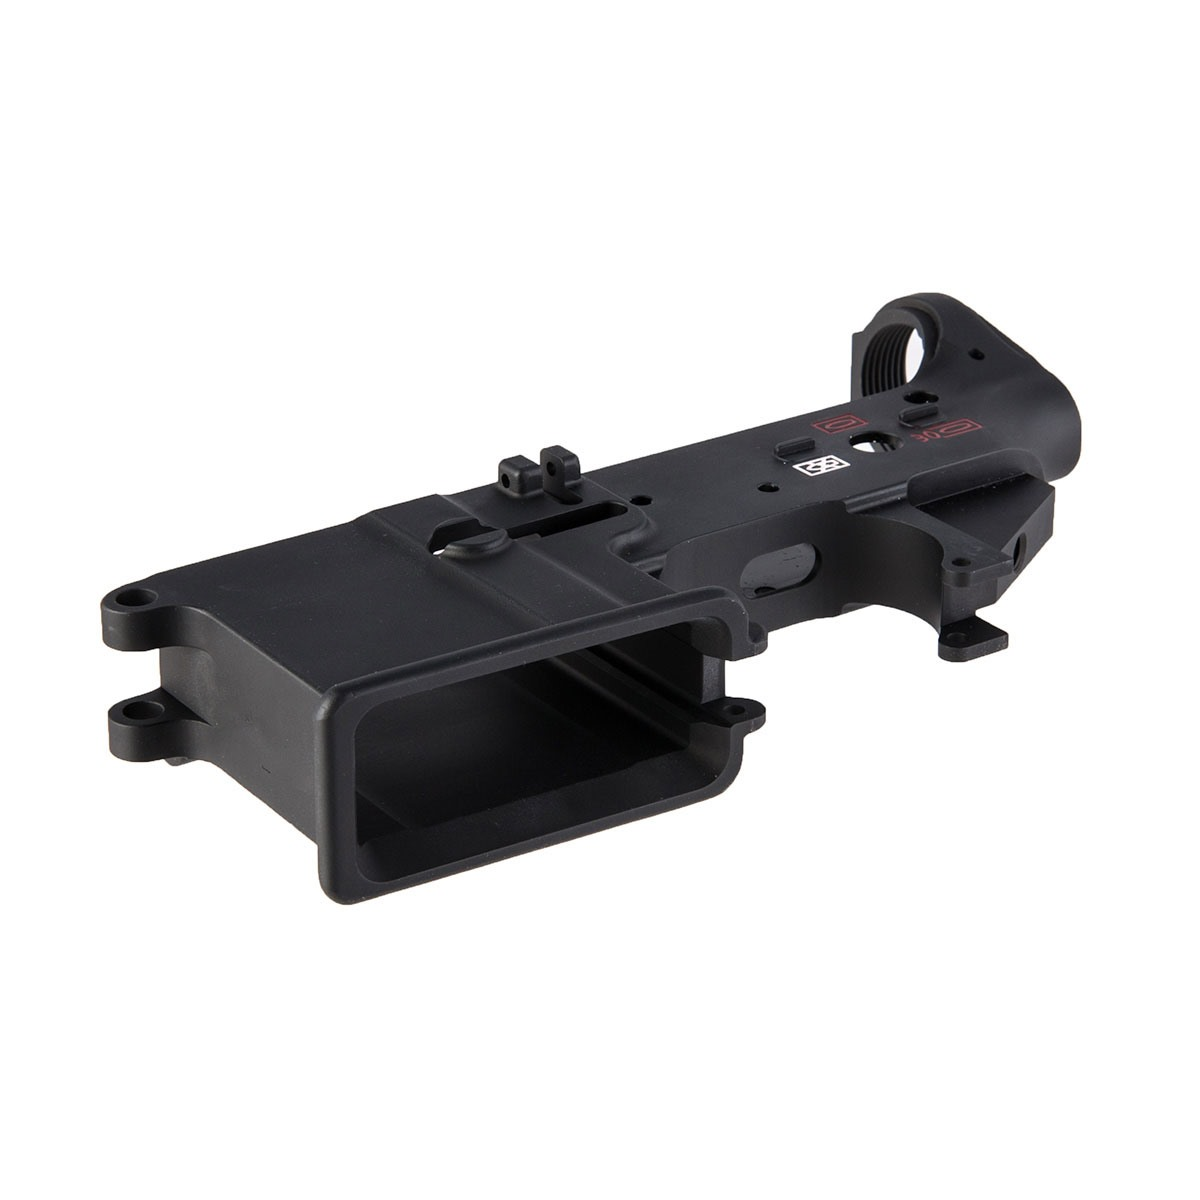 BROWNELLS - BRN-4 STRIPPED LOWER RECEIVER